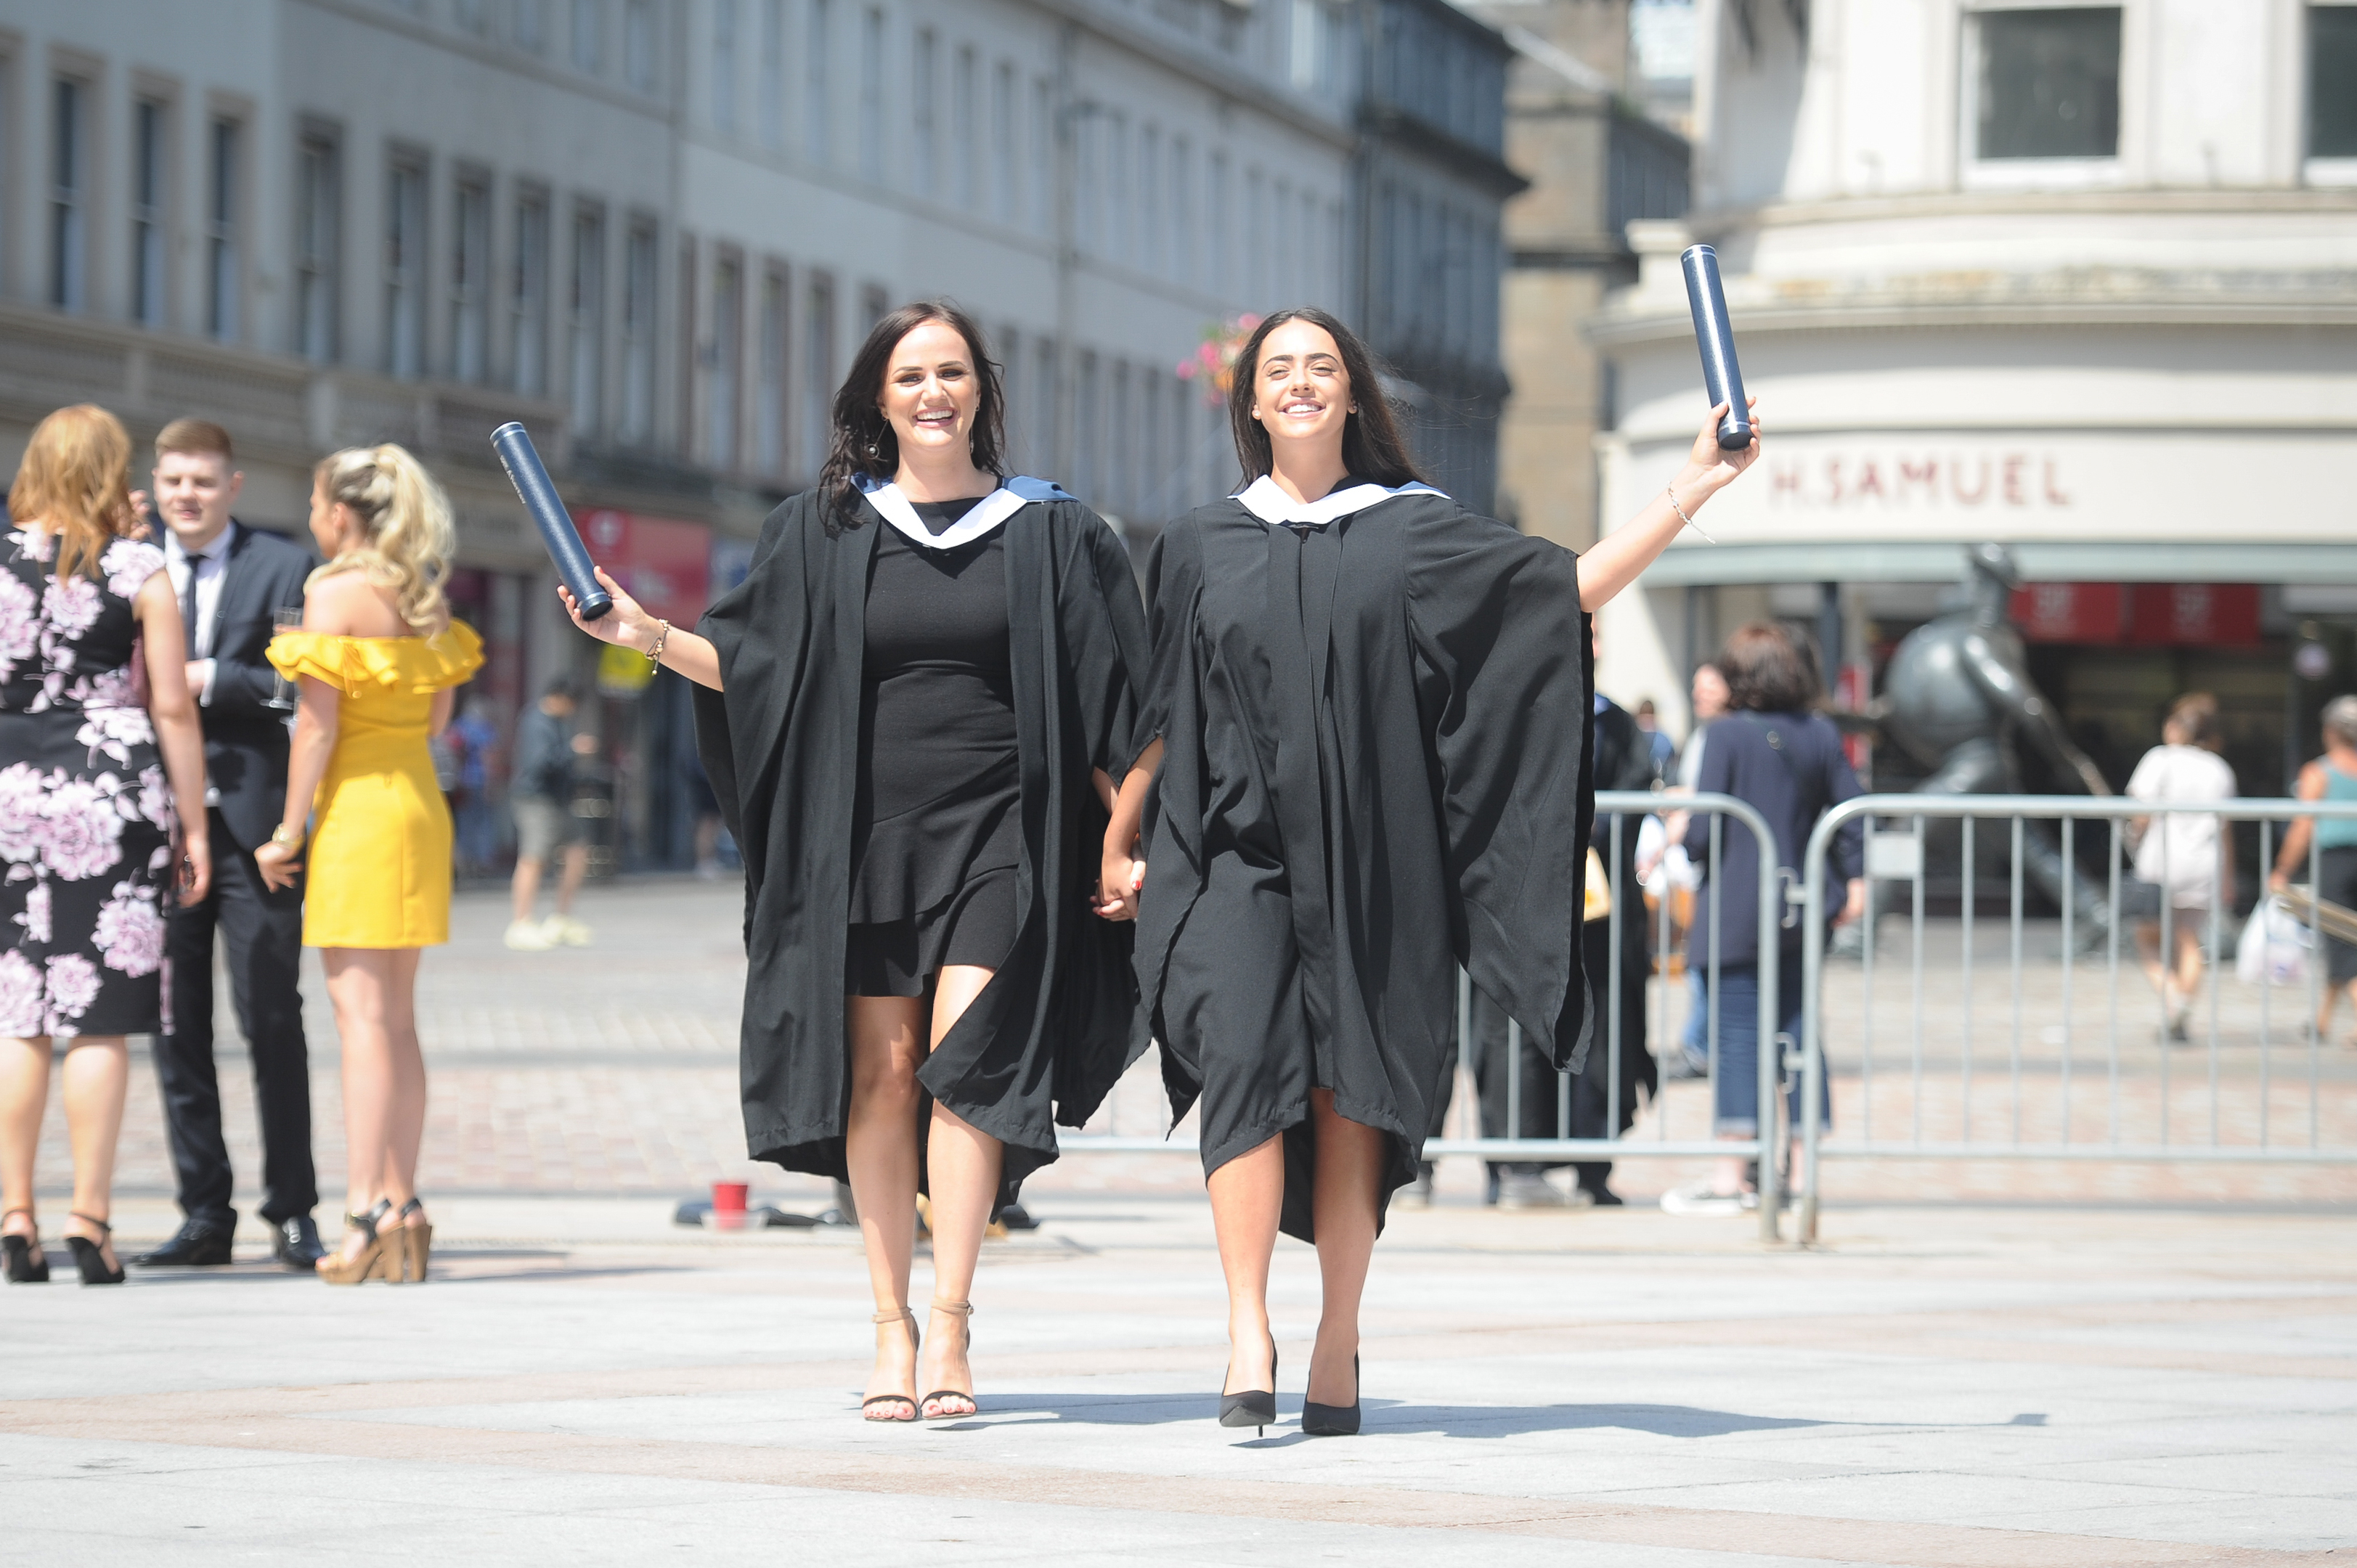 Louise Clarke from Burntisland and Amie Foote from Broughty Ferry who gained BA Hons in Business Management